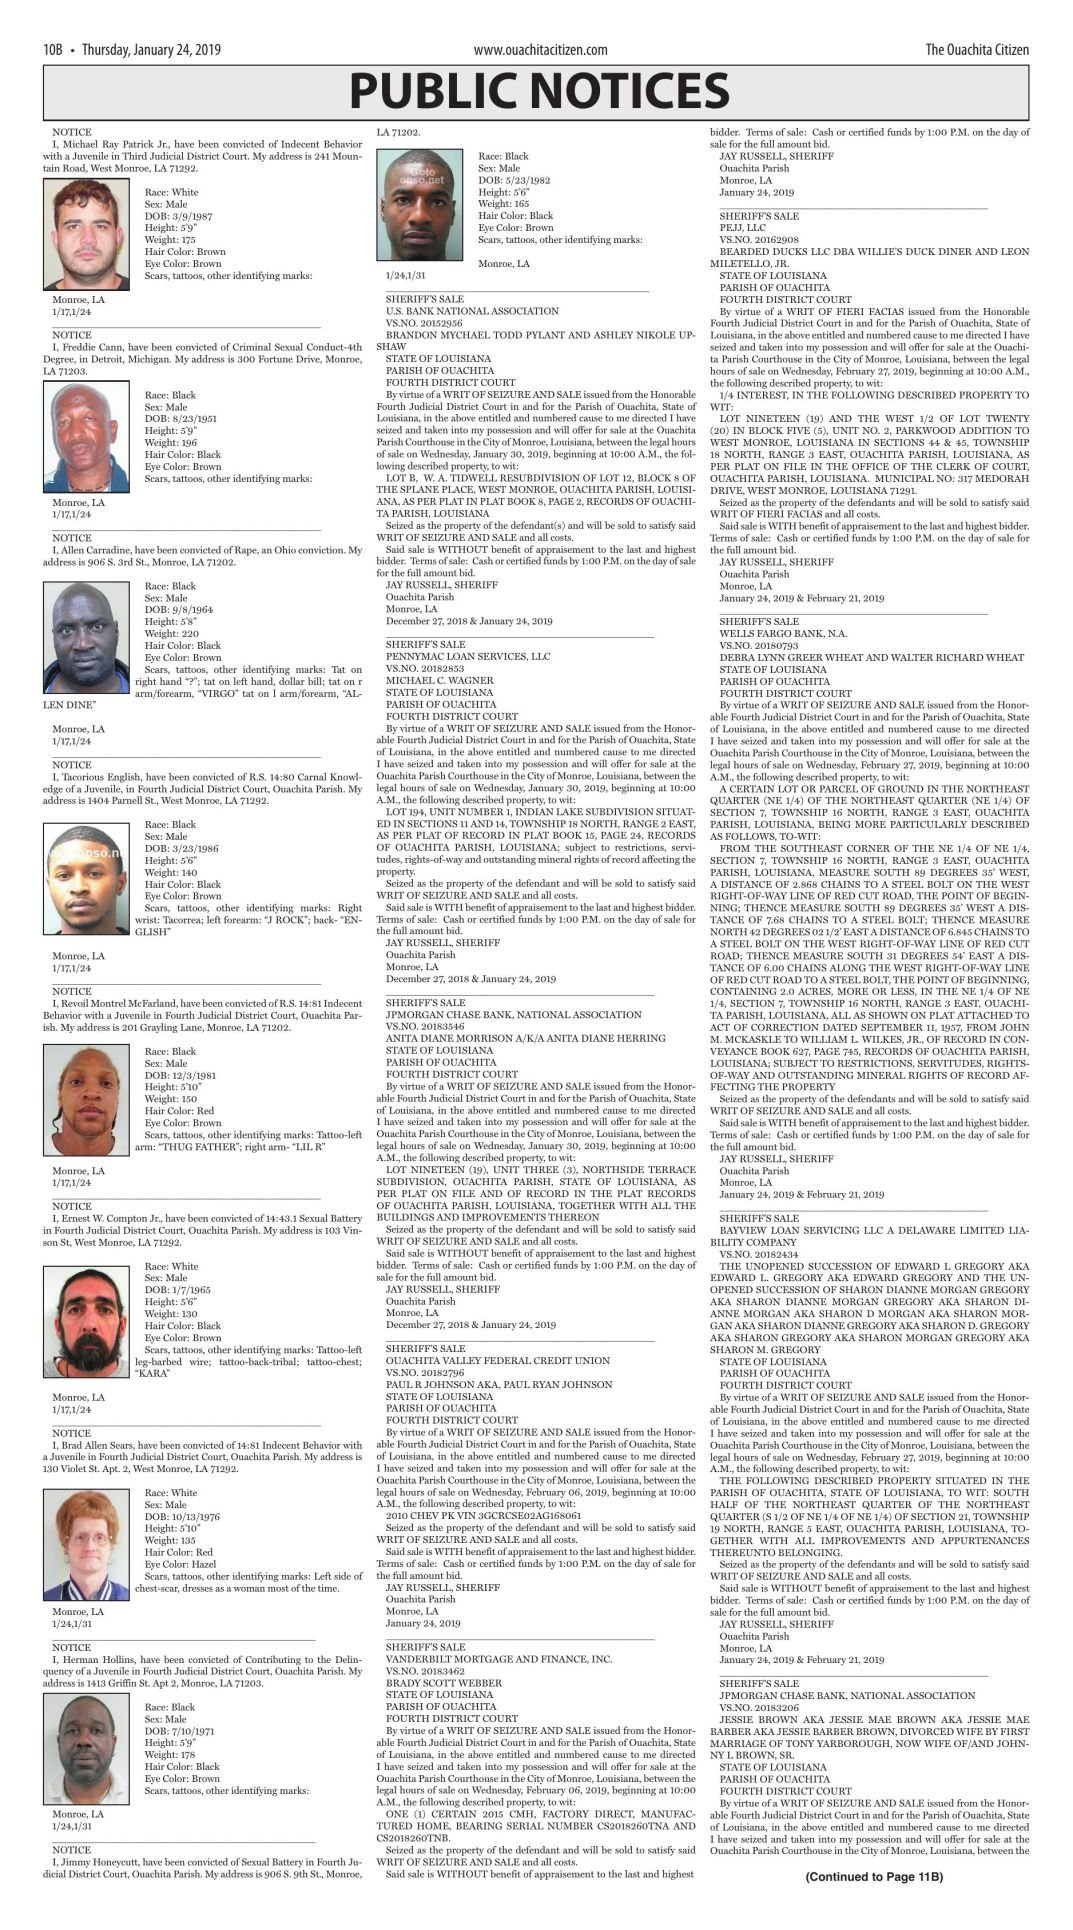 Jan. 24, 2019 Public Notices, click to download pages